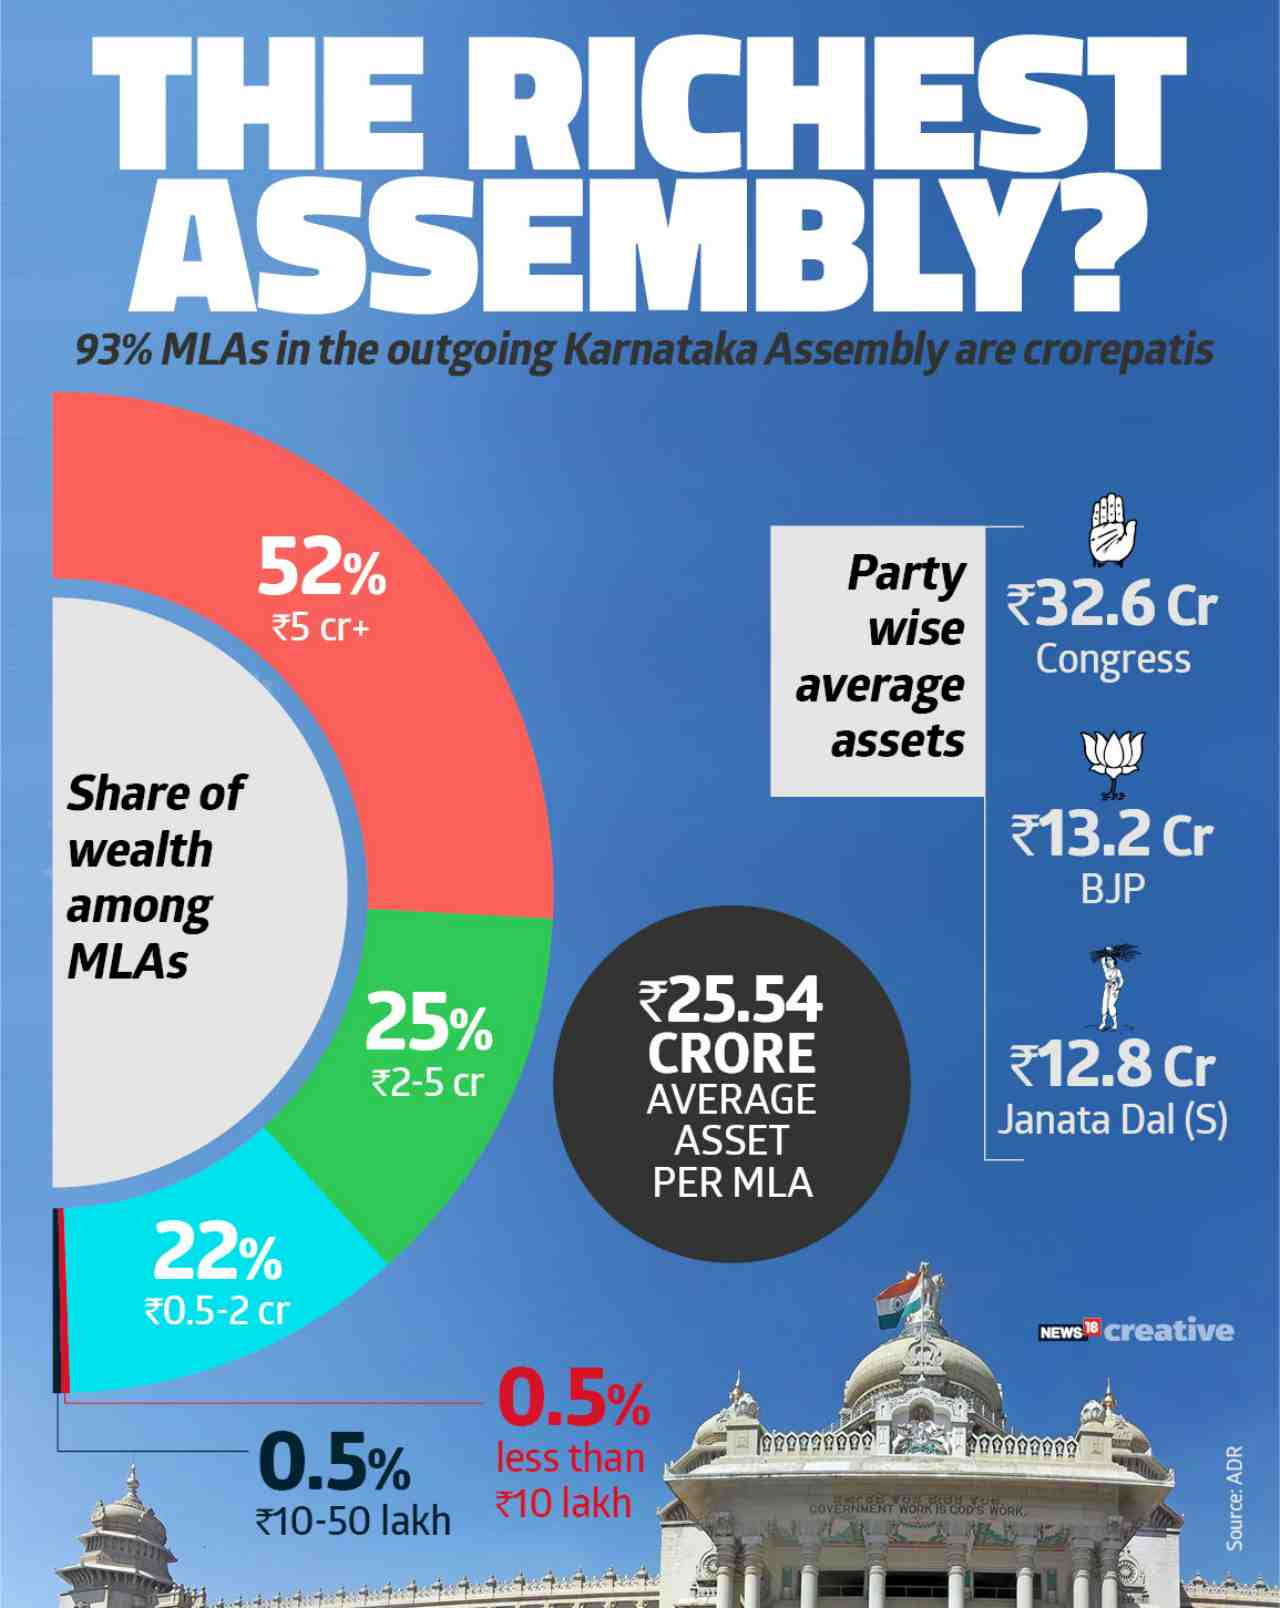 Richie Rich | Over half of the MLAs are worth more than Rs 5 crore. Ruling Congress party is home to the wealthiest of legislators with the average assets per MLA skewing towards Rs 32 crore, more than double that of BJP.